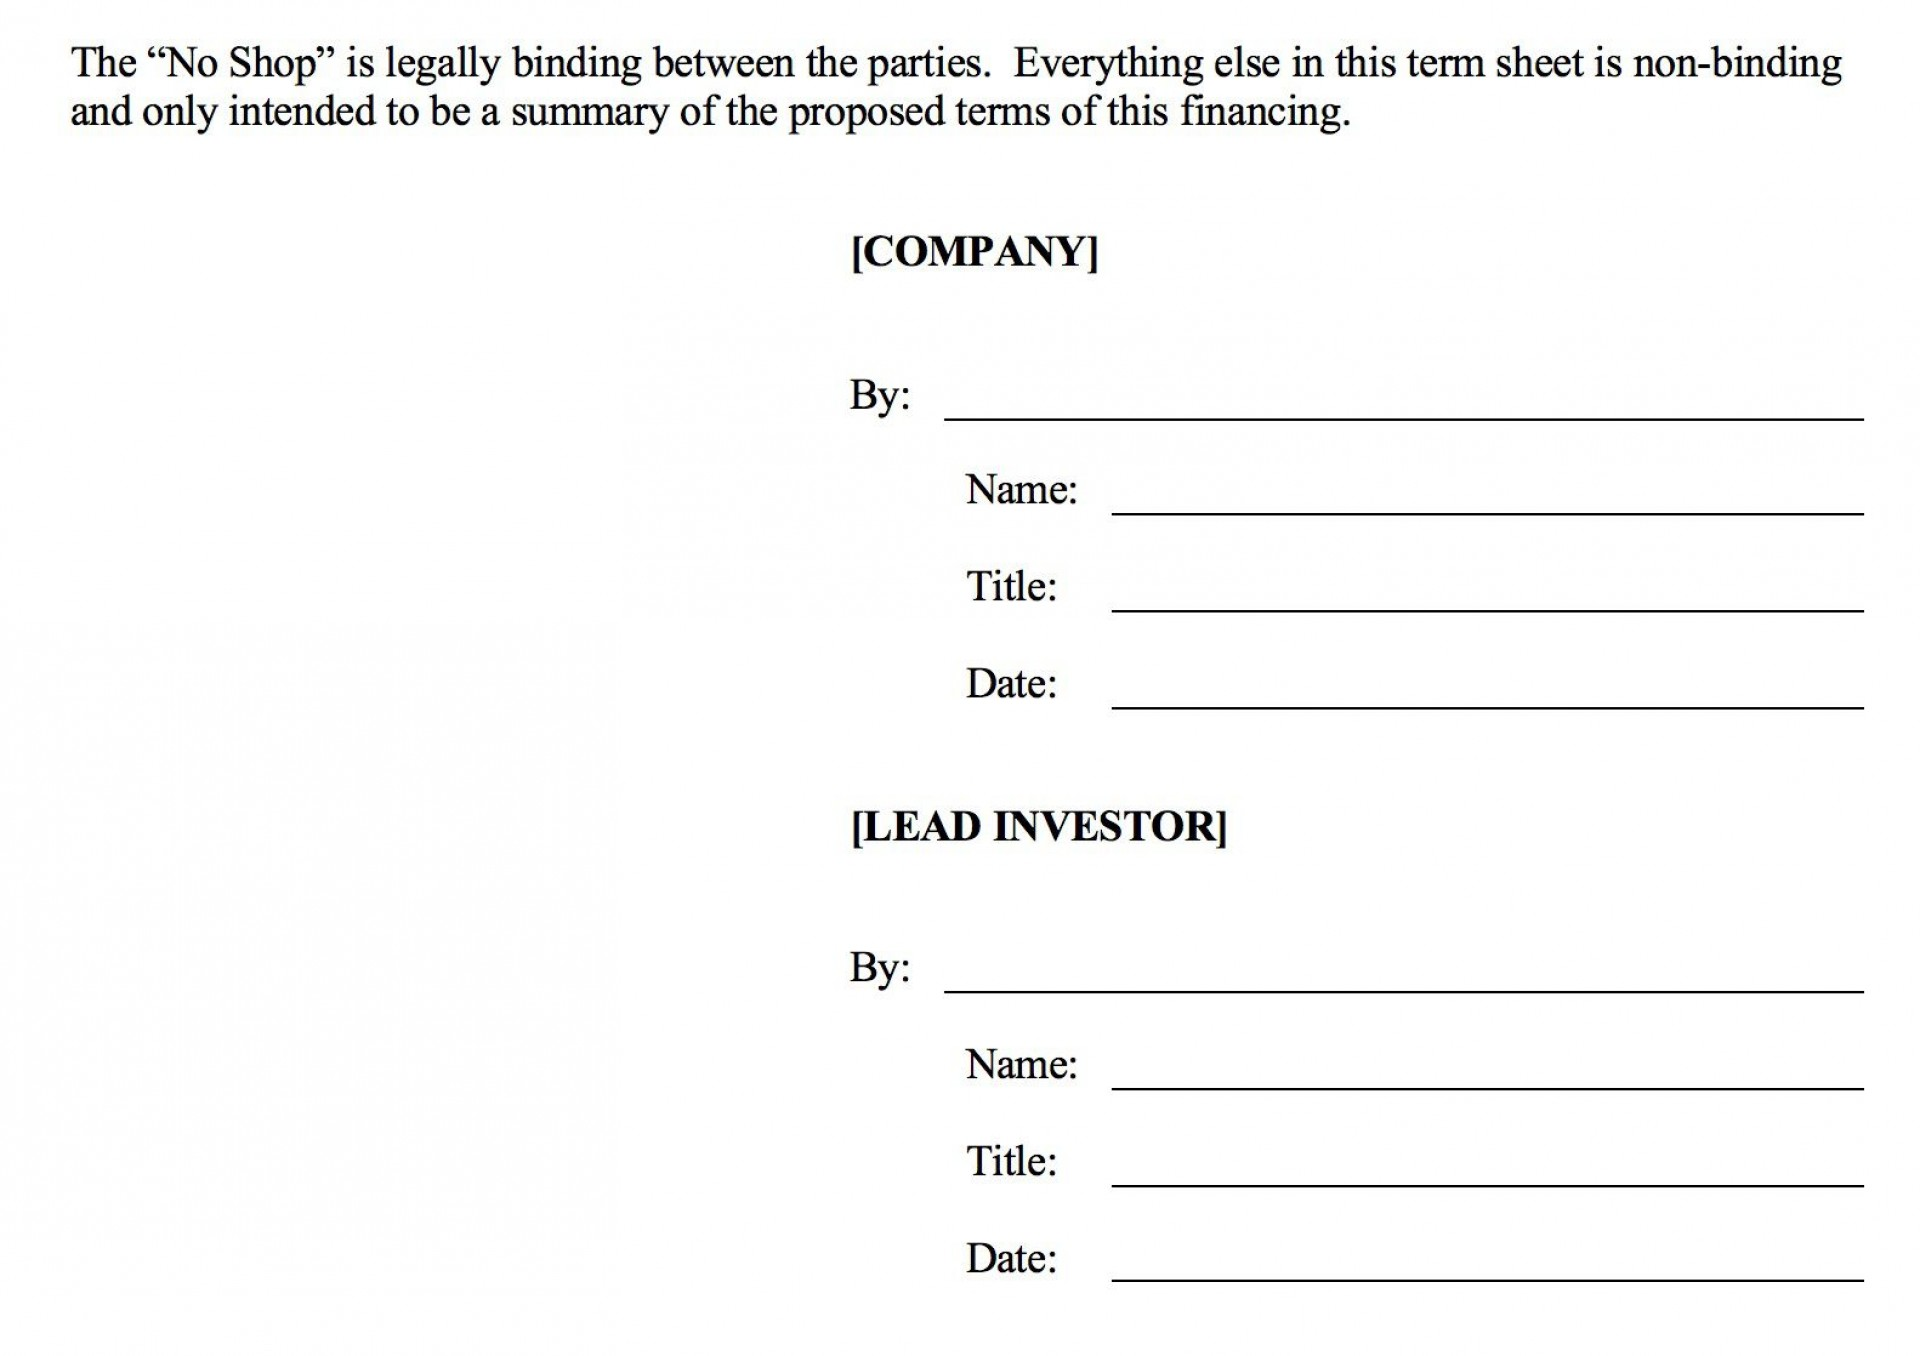 006 Fearsome Term Sheet Template Word Sample  Simple Loan Microsoft1920